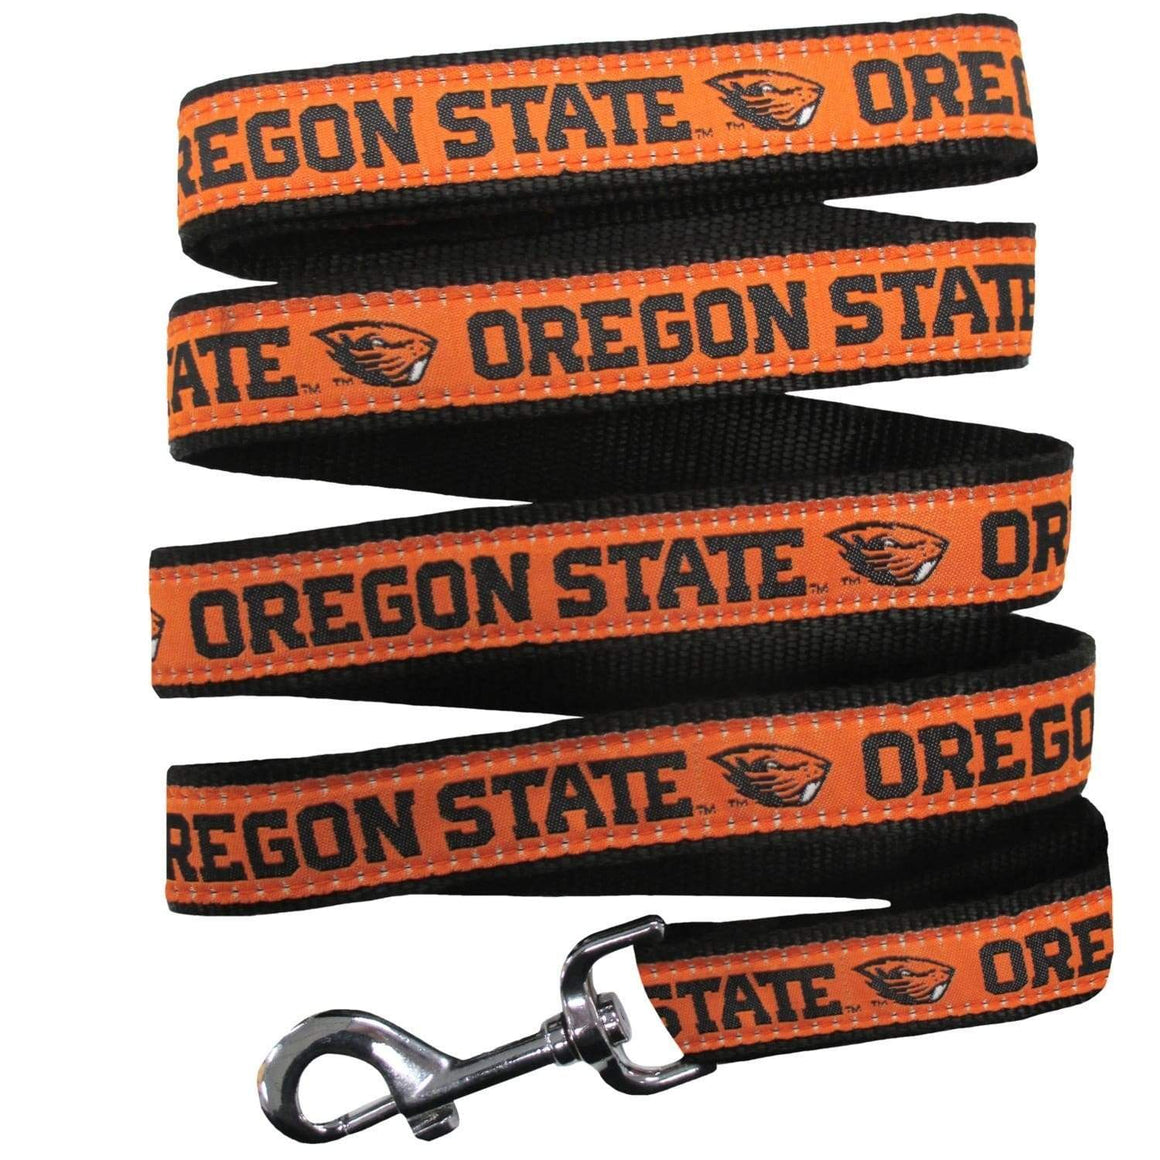 Pets First Dog-products NCAA Medium Oregon State Beavers Pet Leash By Pets First